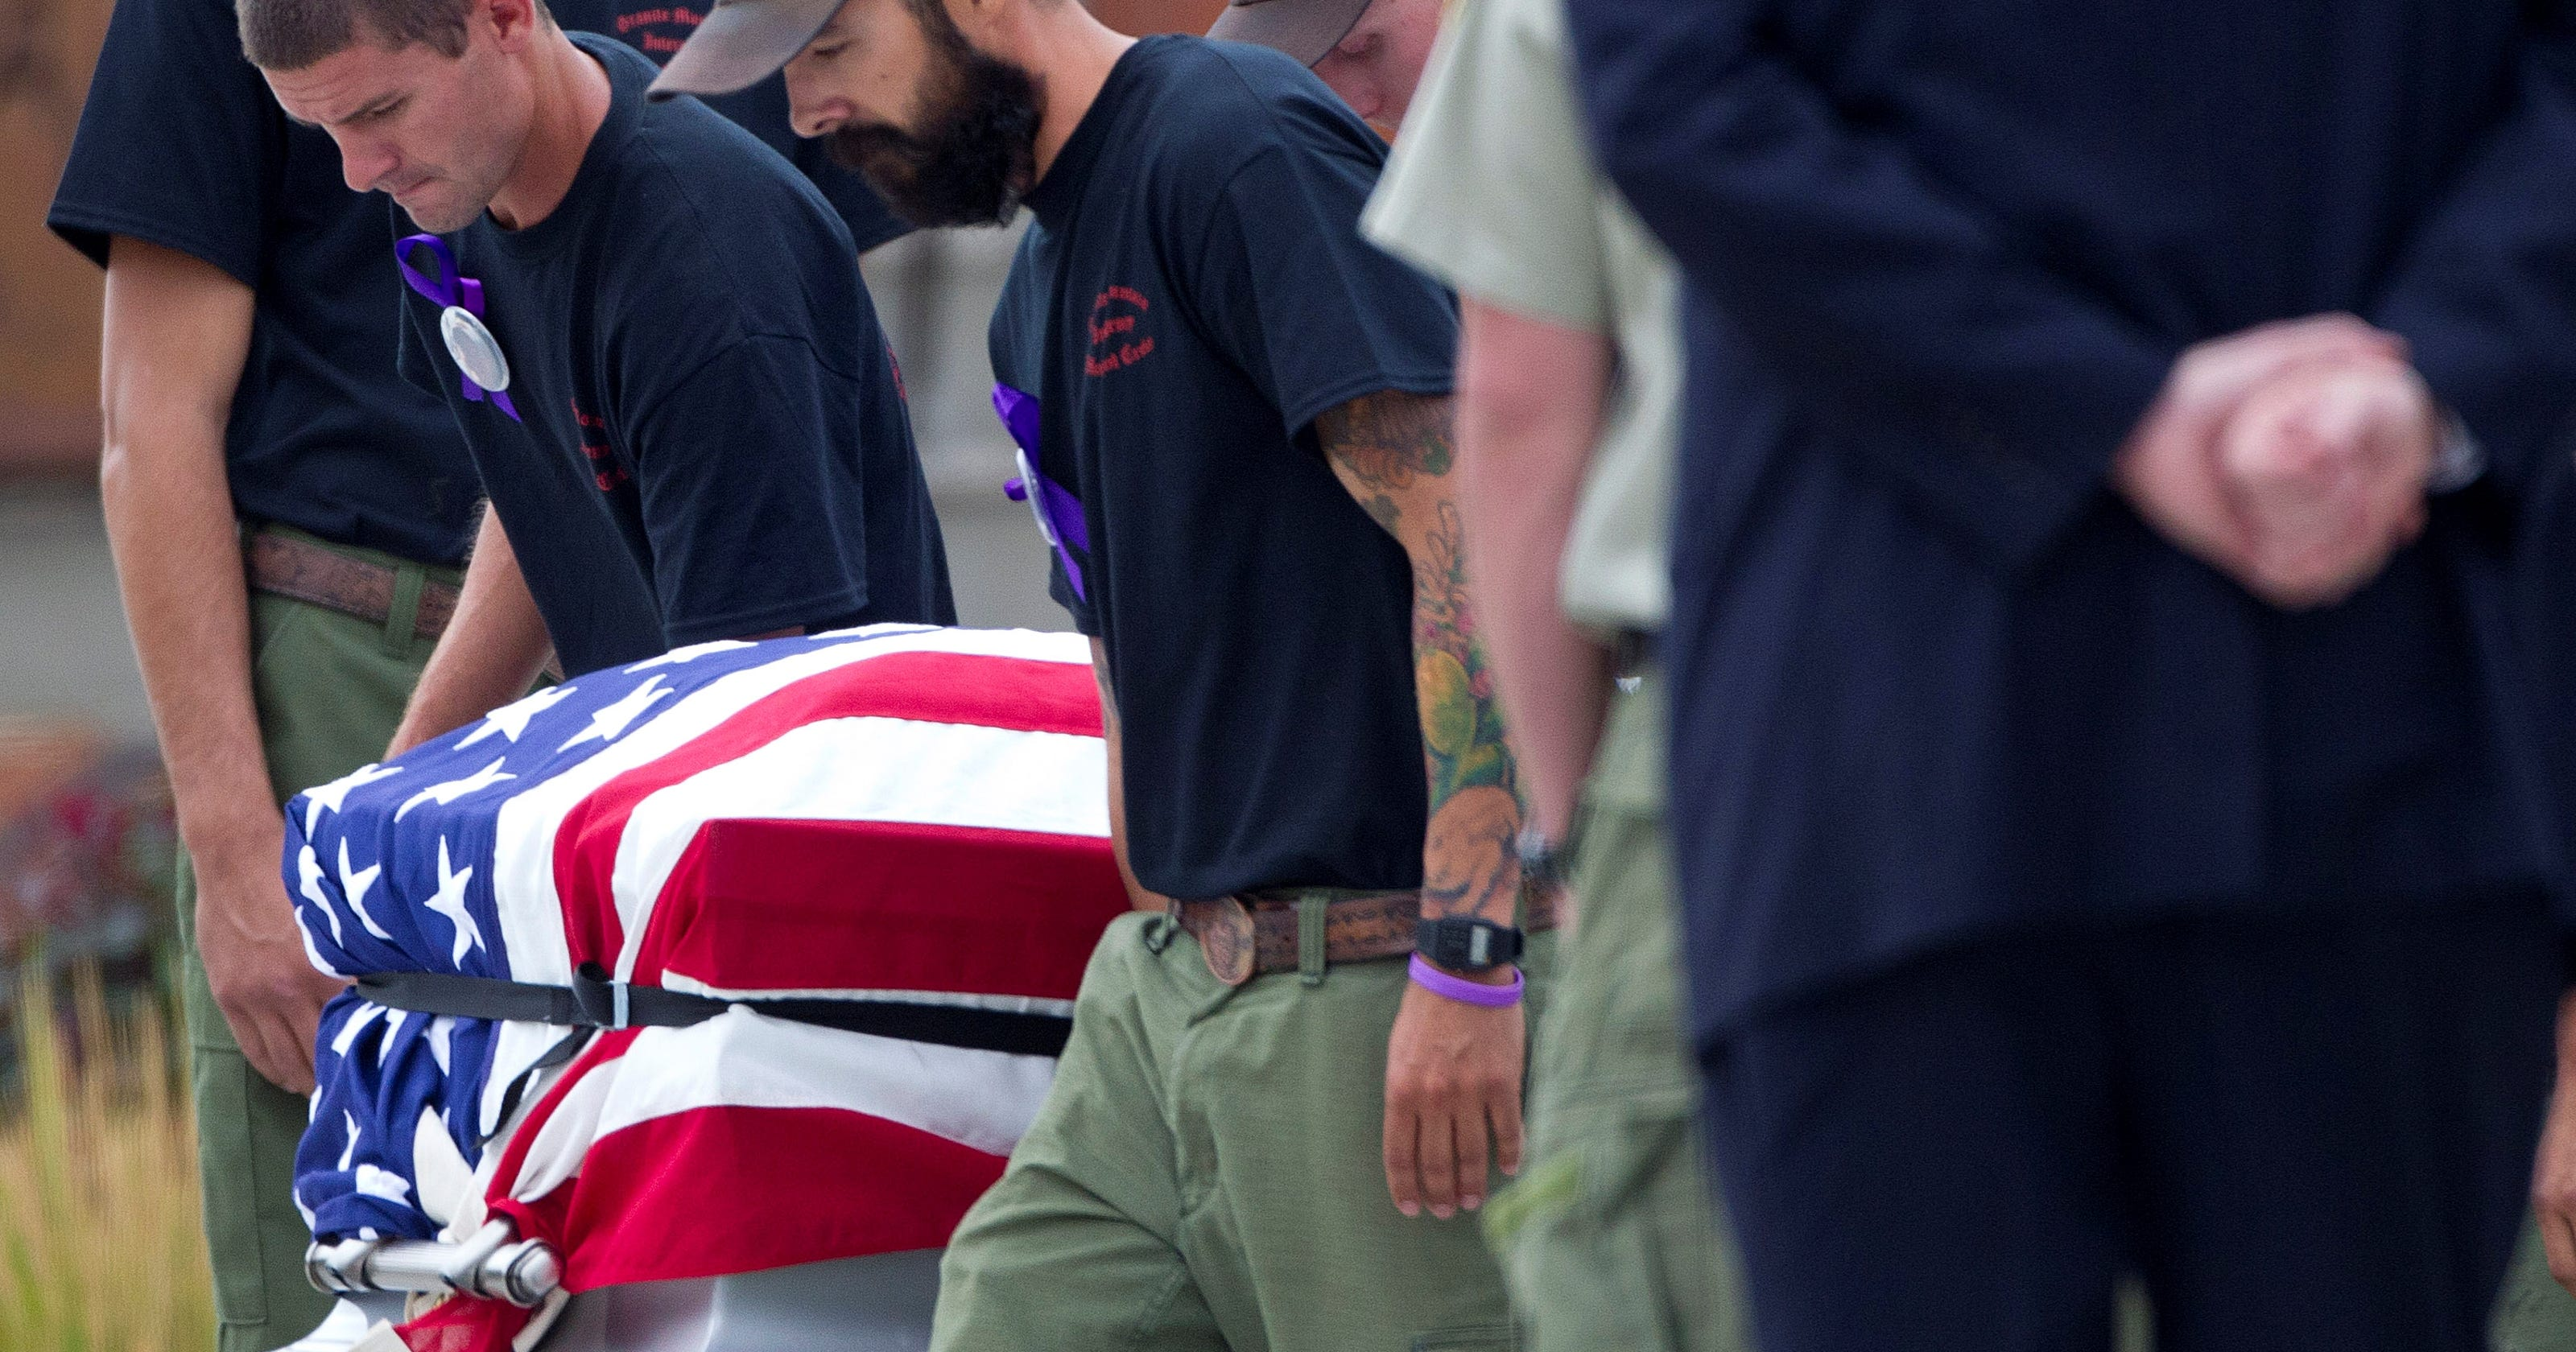 3 arrested for crimes in wake of Yarnell fire trauma